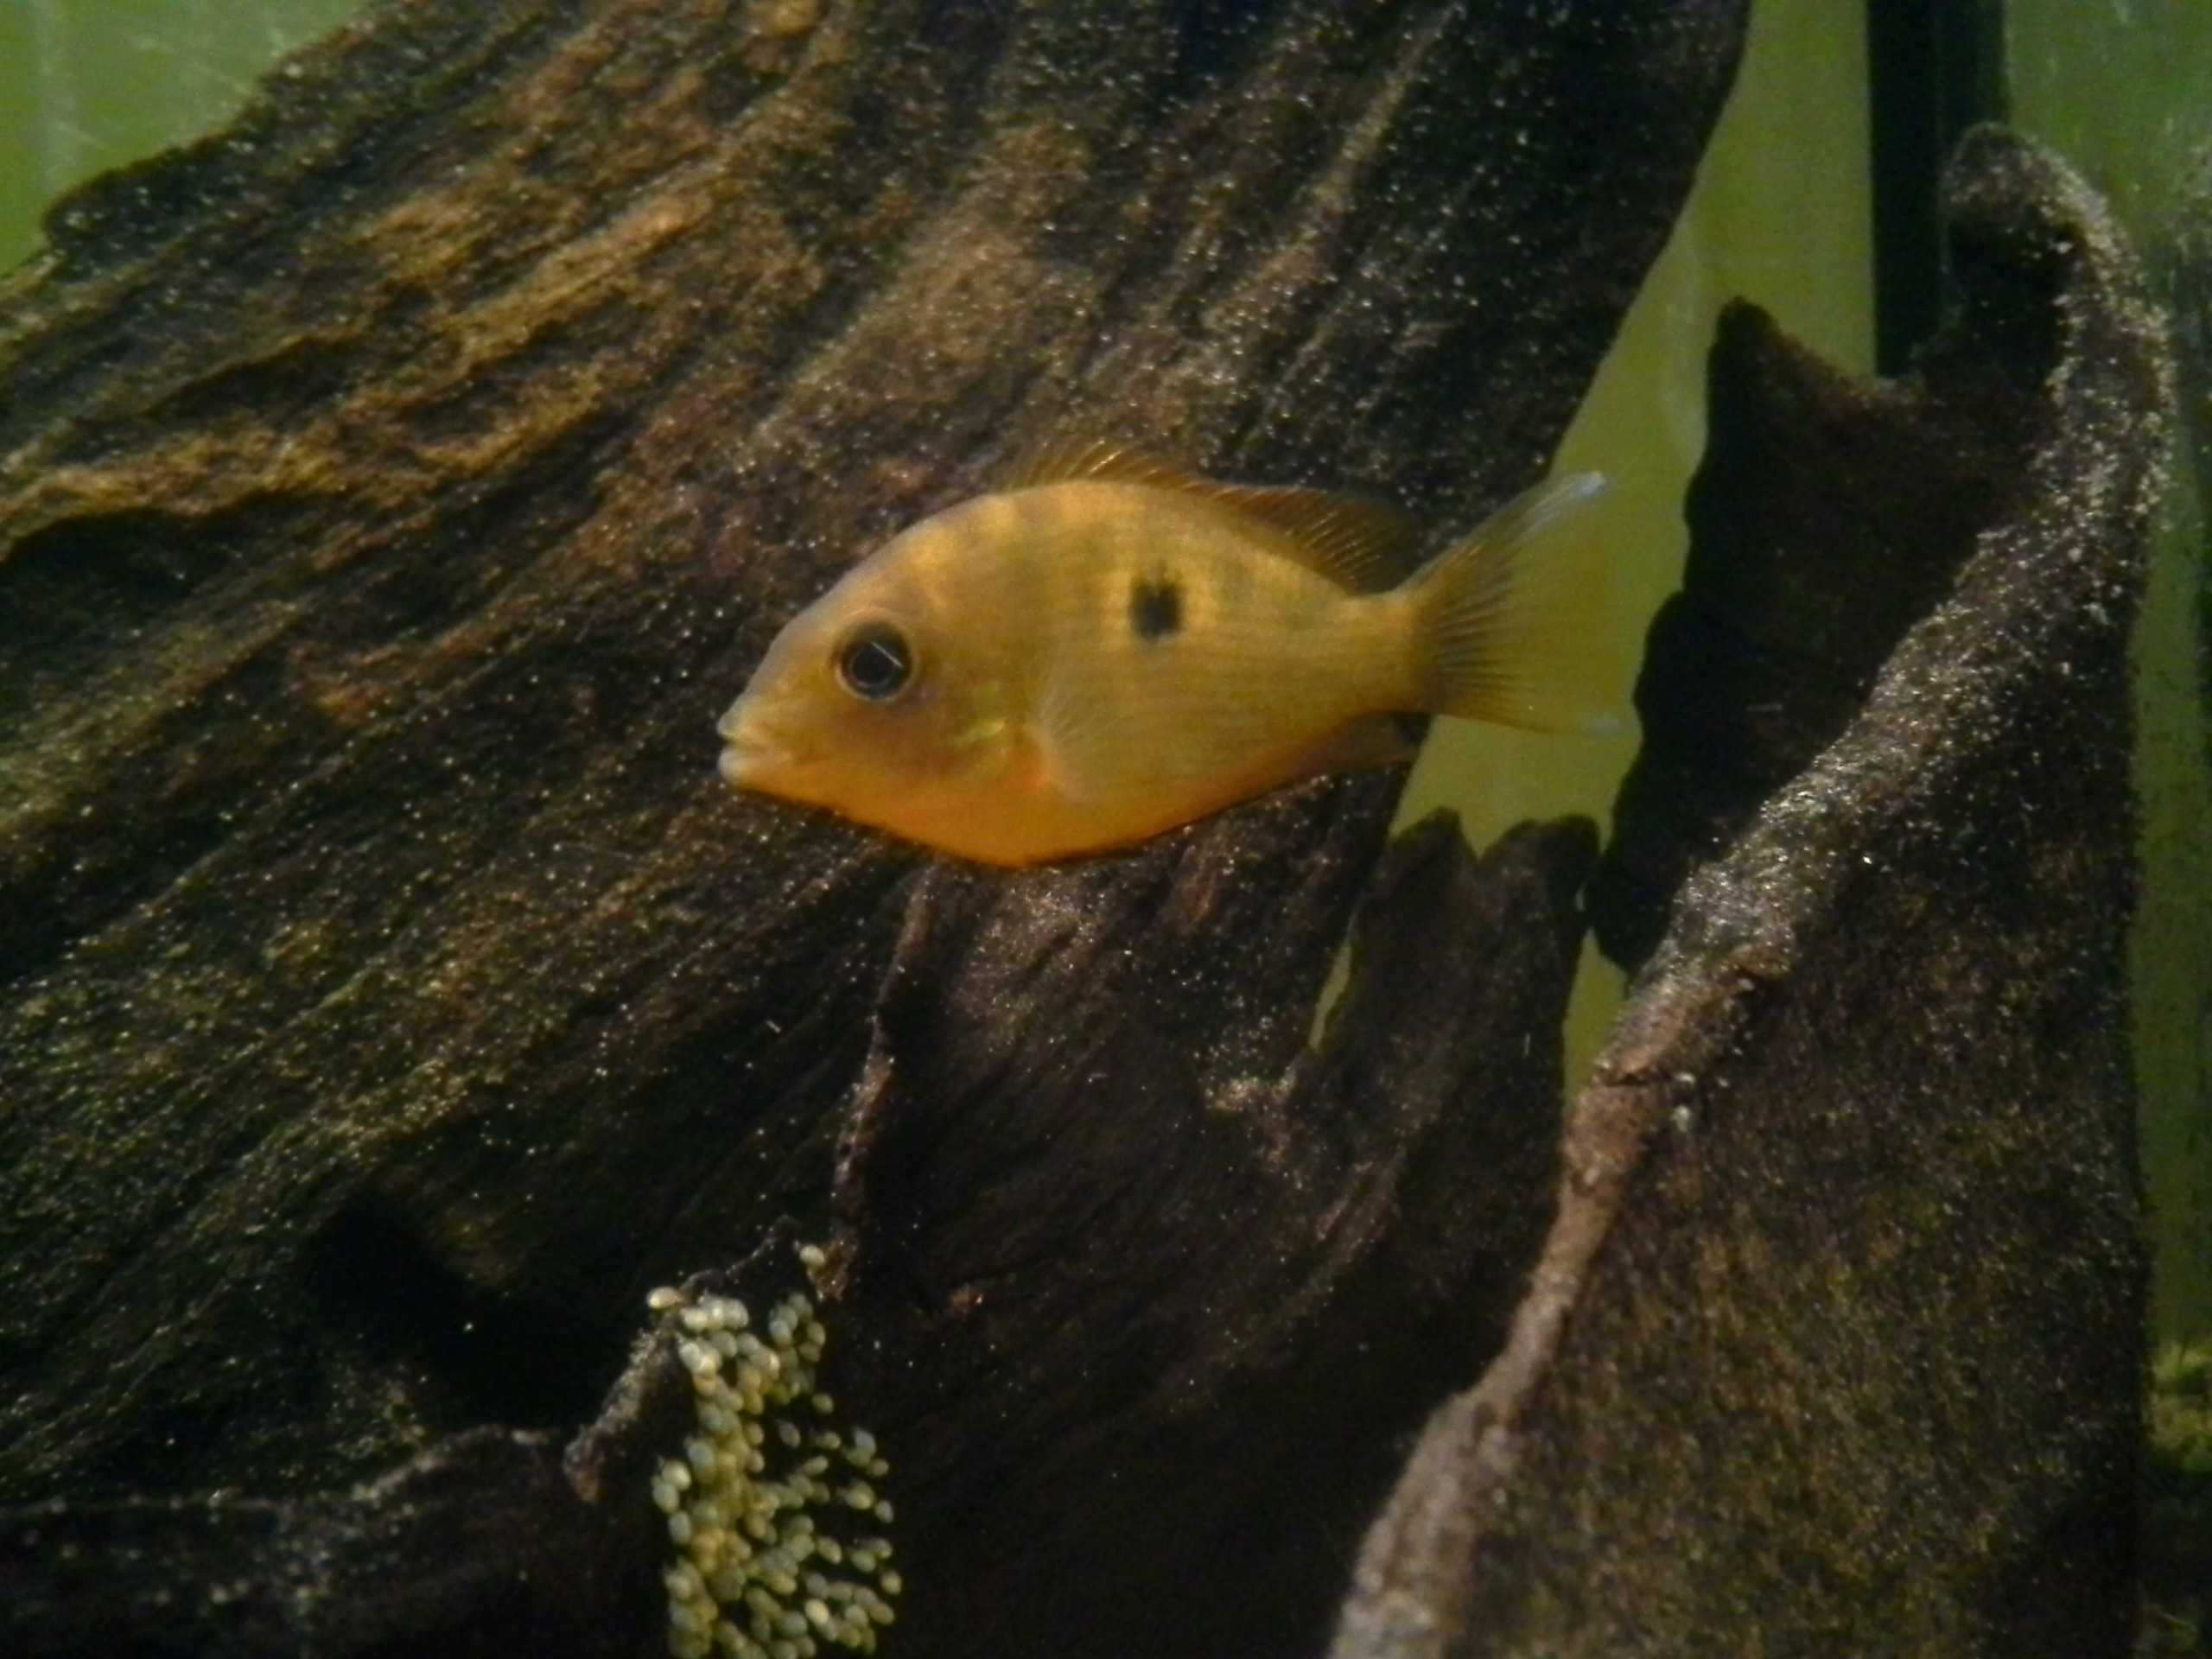 cichlids.com: does anyone have chromides? green or orange